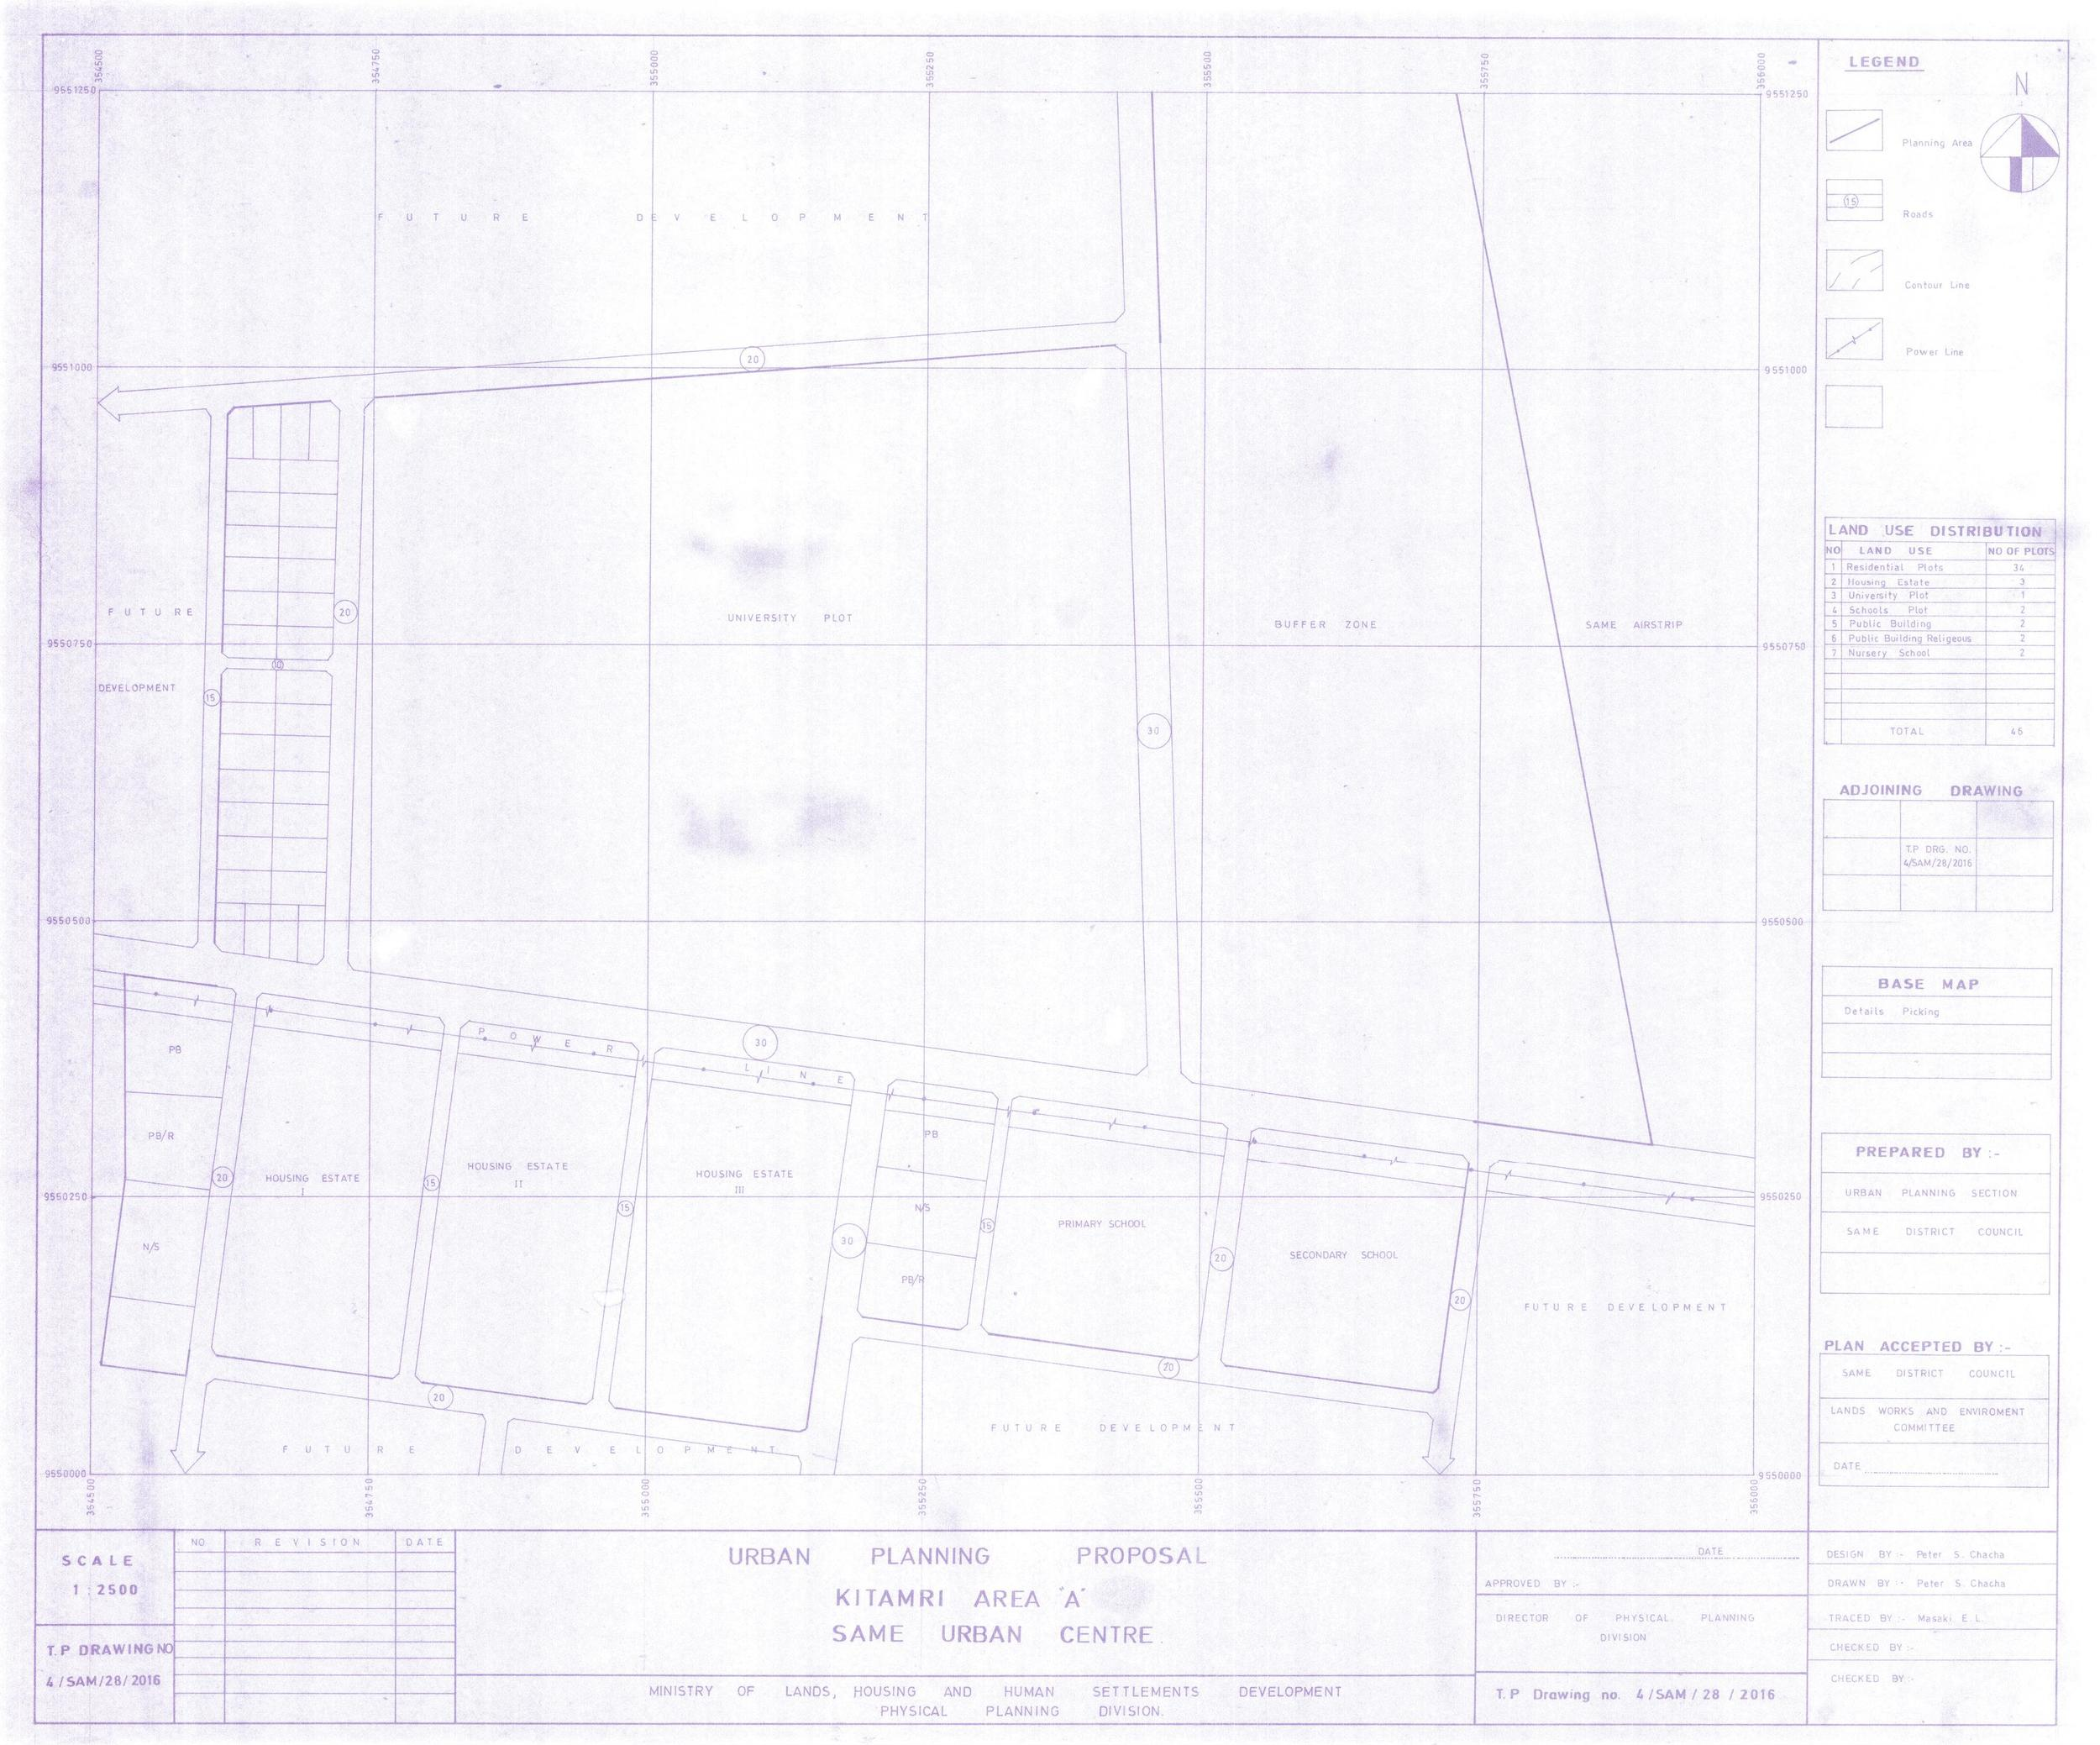 """The urban planning proposal drawing from the District Land Office of Same showing the future location of the Same Polytechnic College marked as """"UNIVERSITY PLOT""""."""